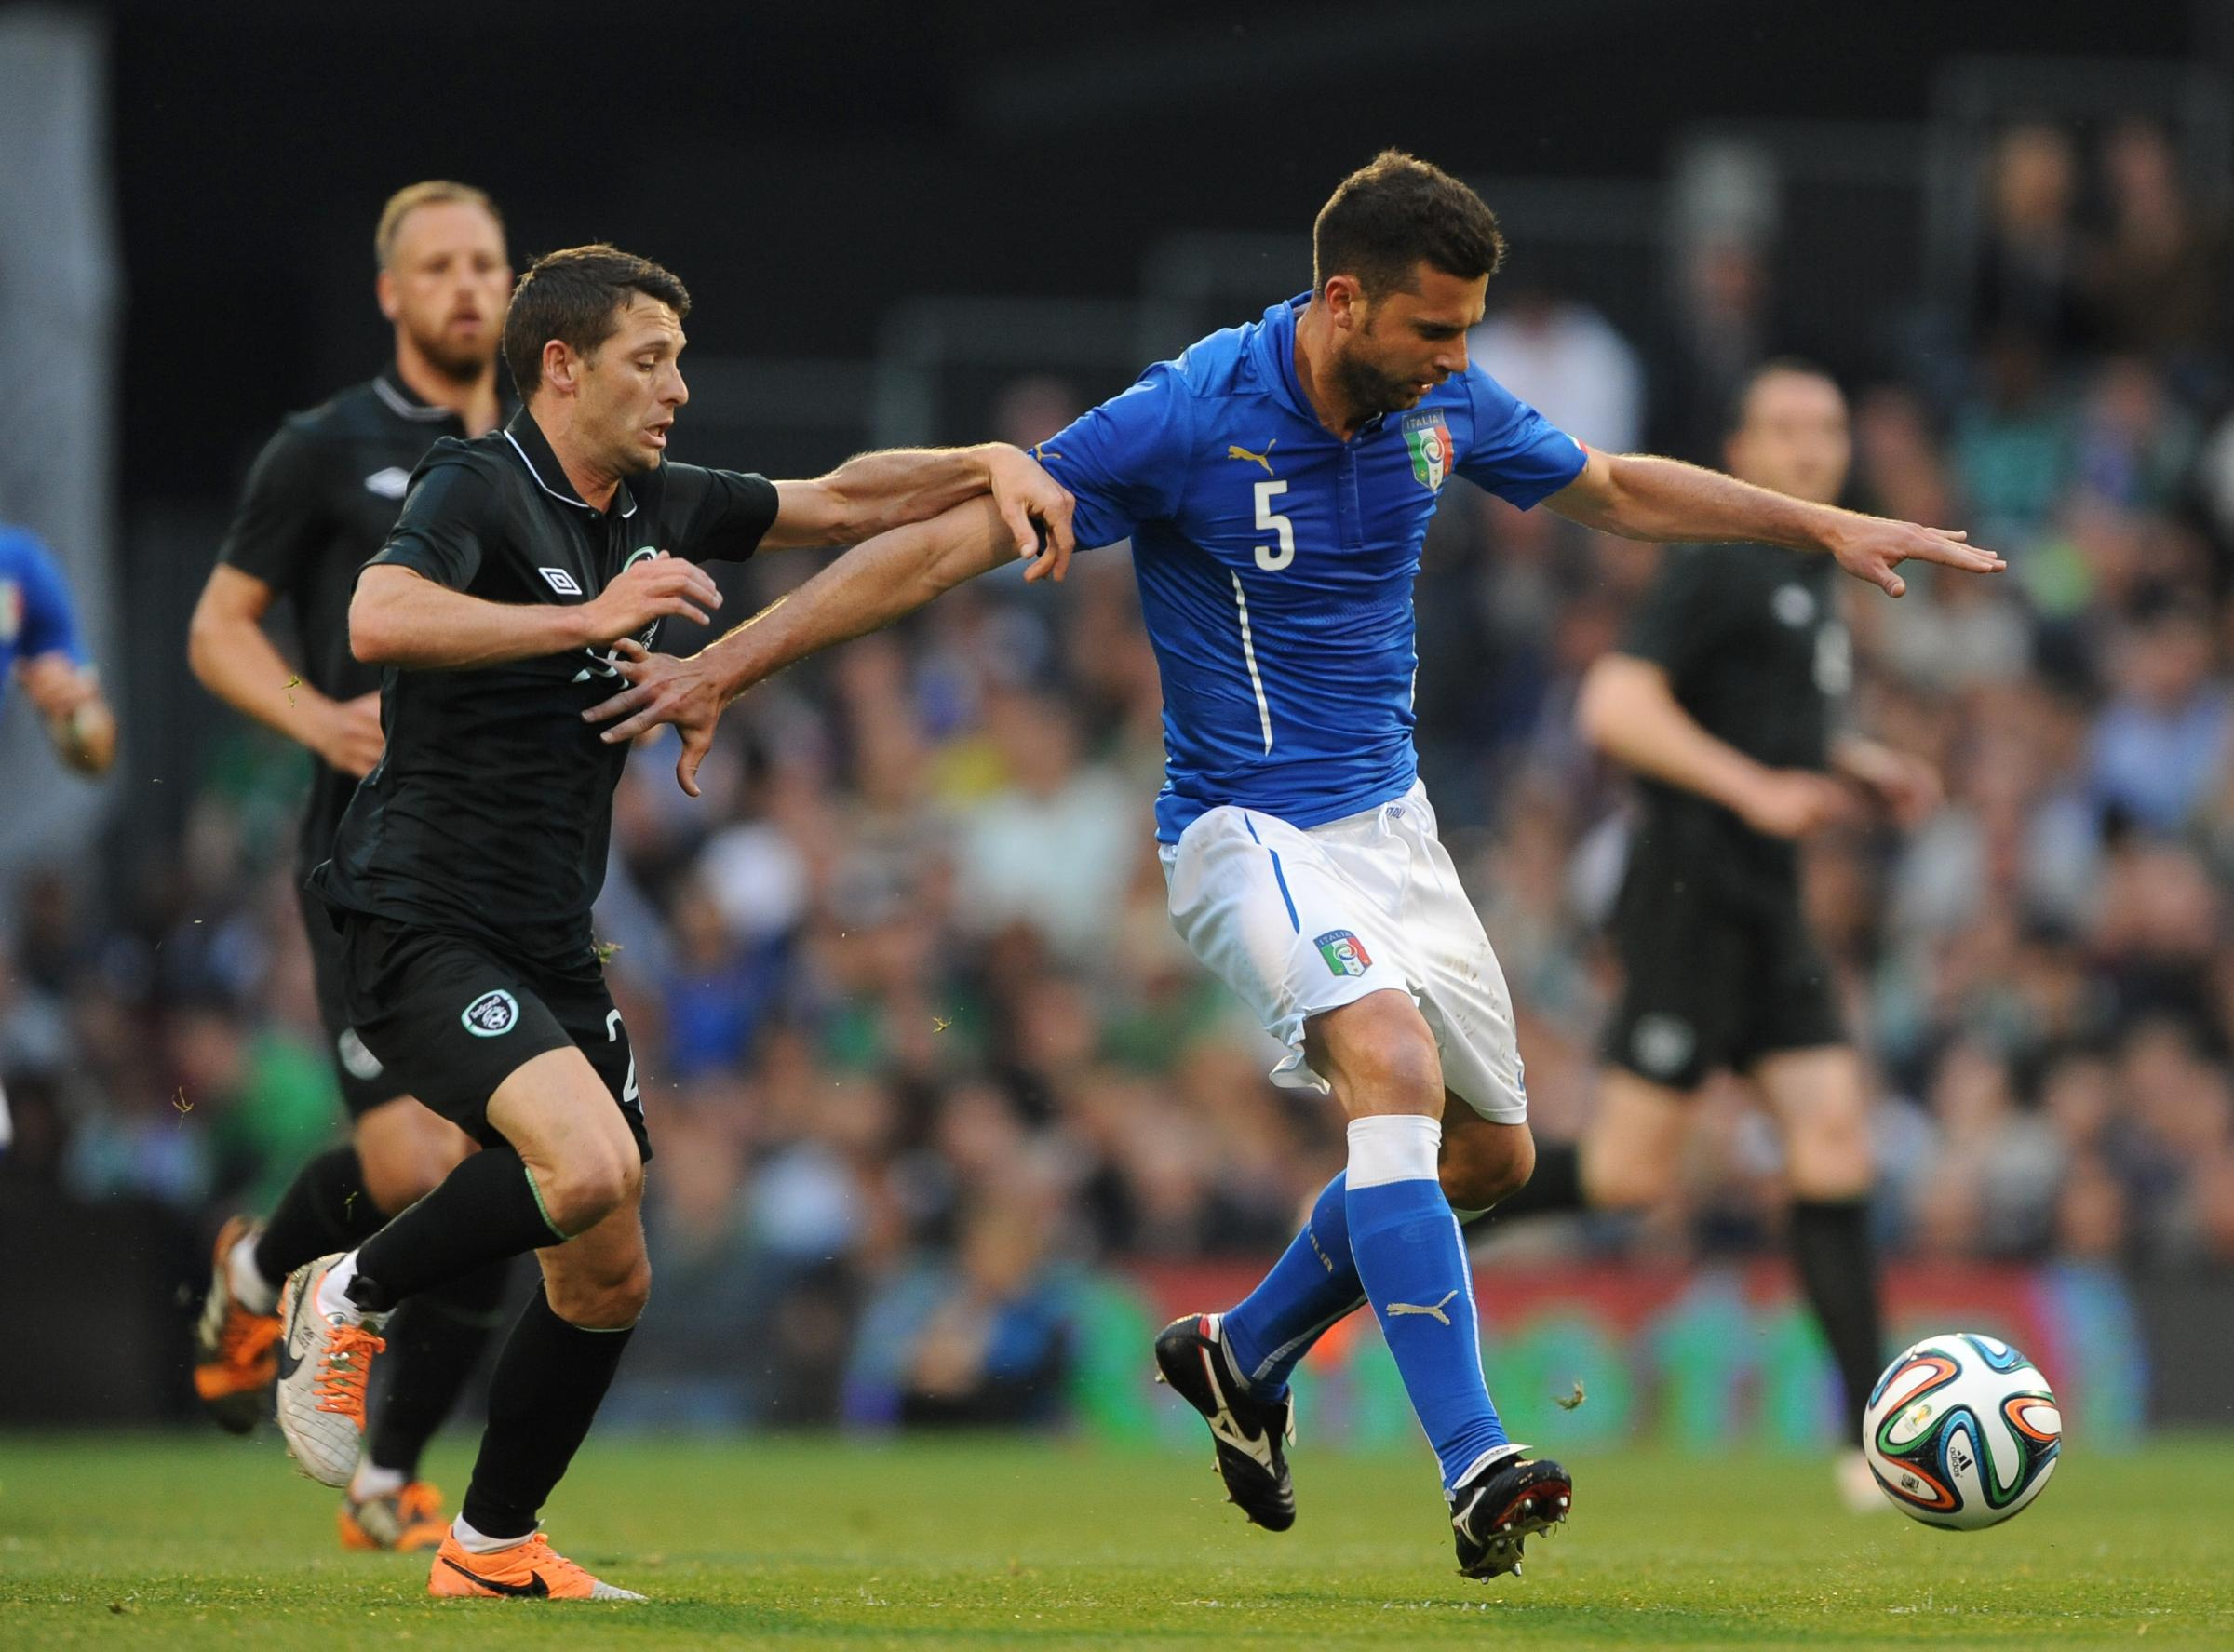 FRIENDLY DRAW: Republic of Ireland's Wes Hoolahan (left) and Italy's Thiago Motta (right) battle for the ball during Saturday's 0-0 dra